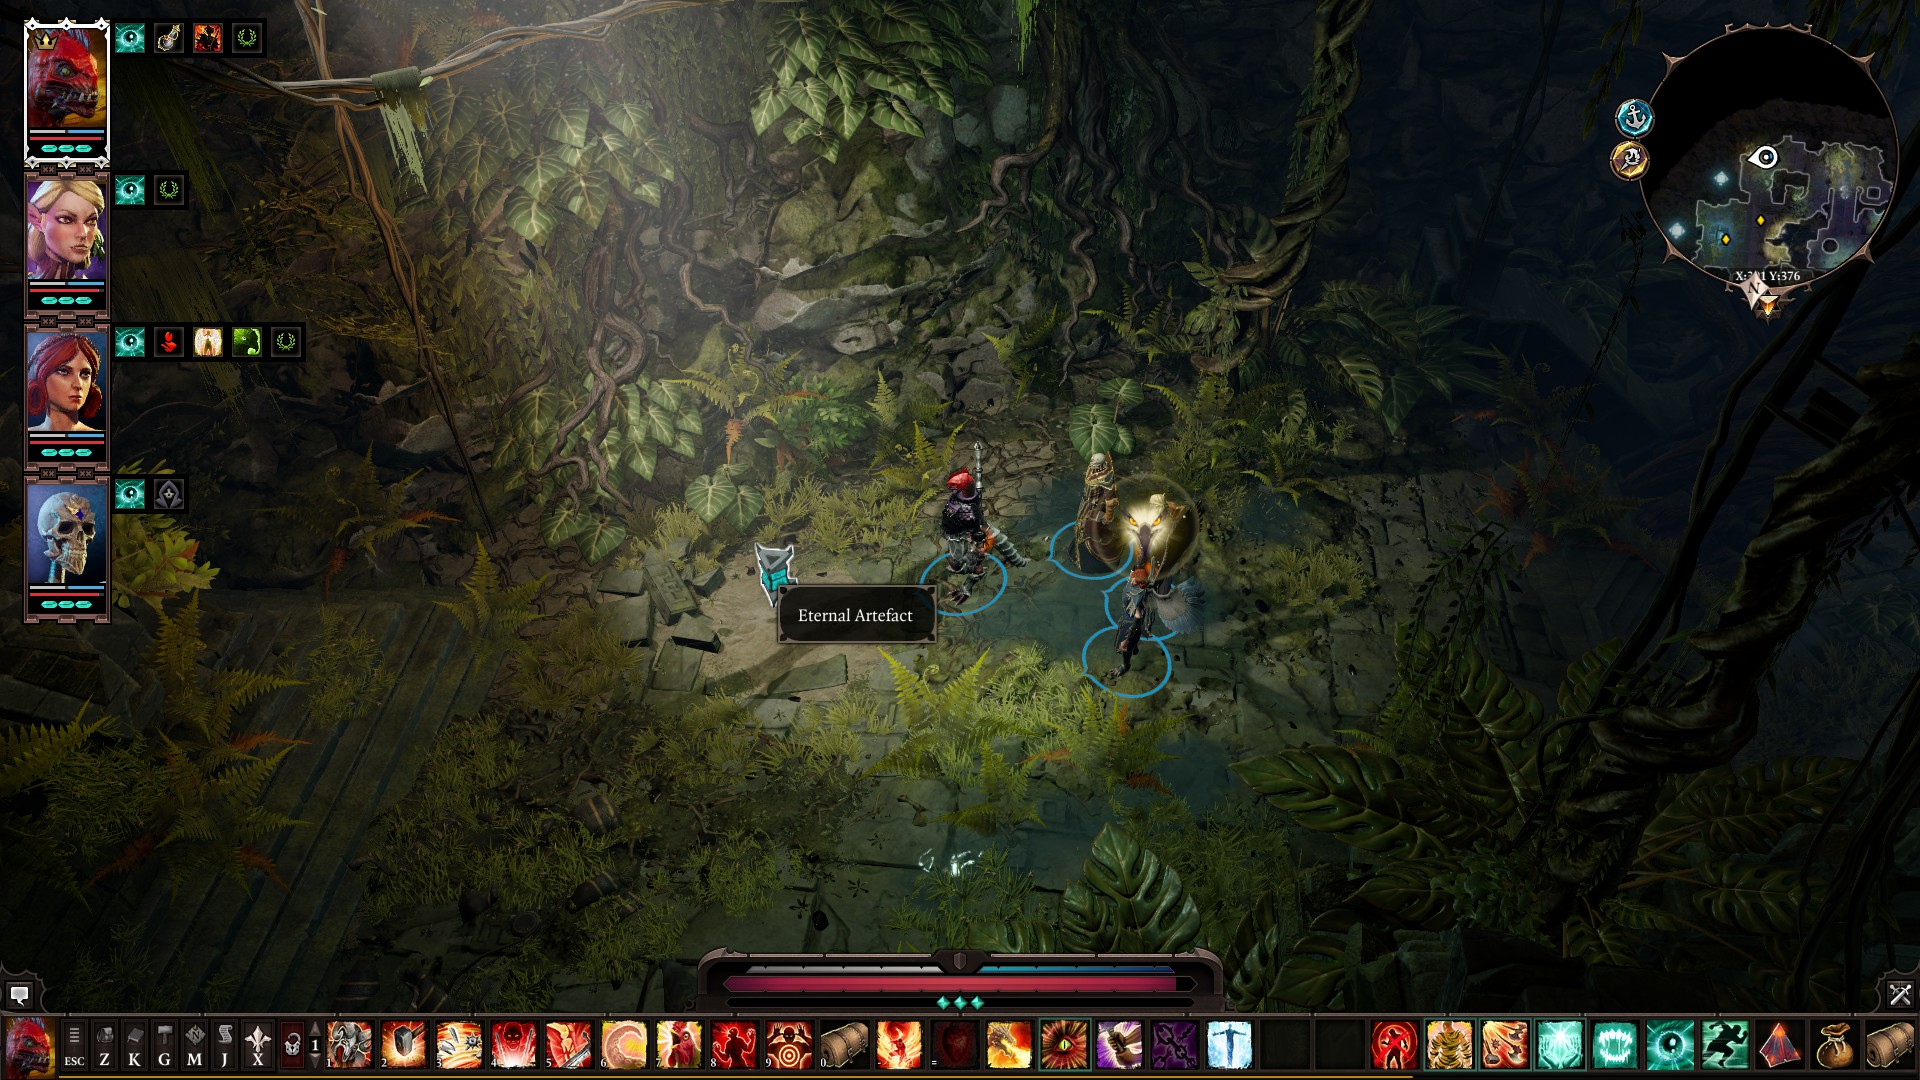 Divinity: Original Sin 2 - All Eternal Artefacts Location Tips - ACT III - The Nameless Isle - B1842CA